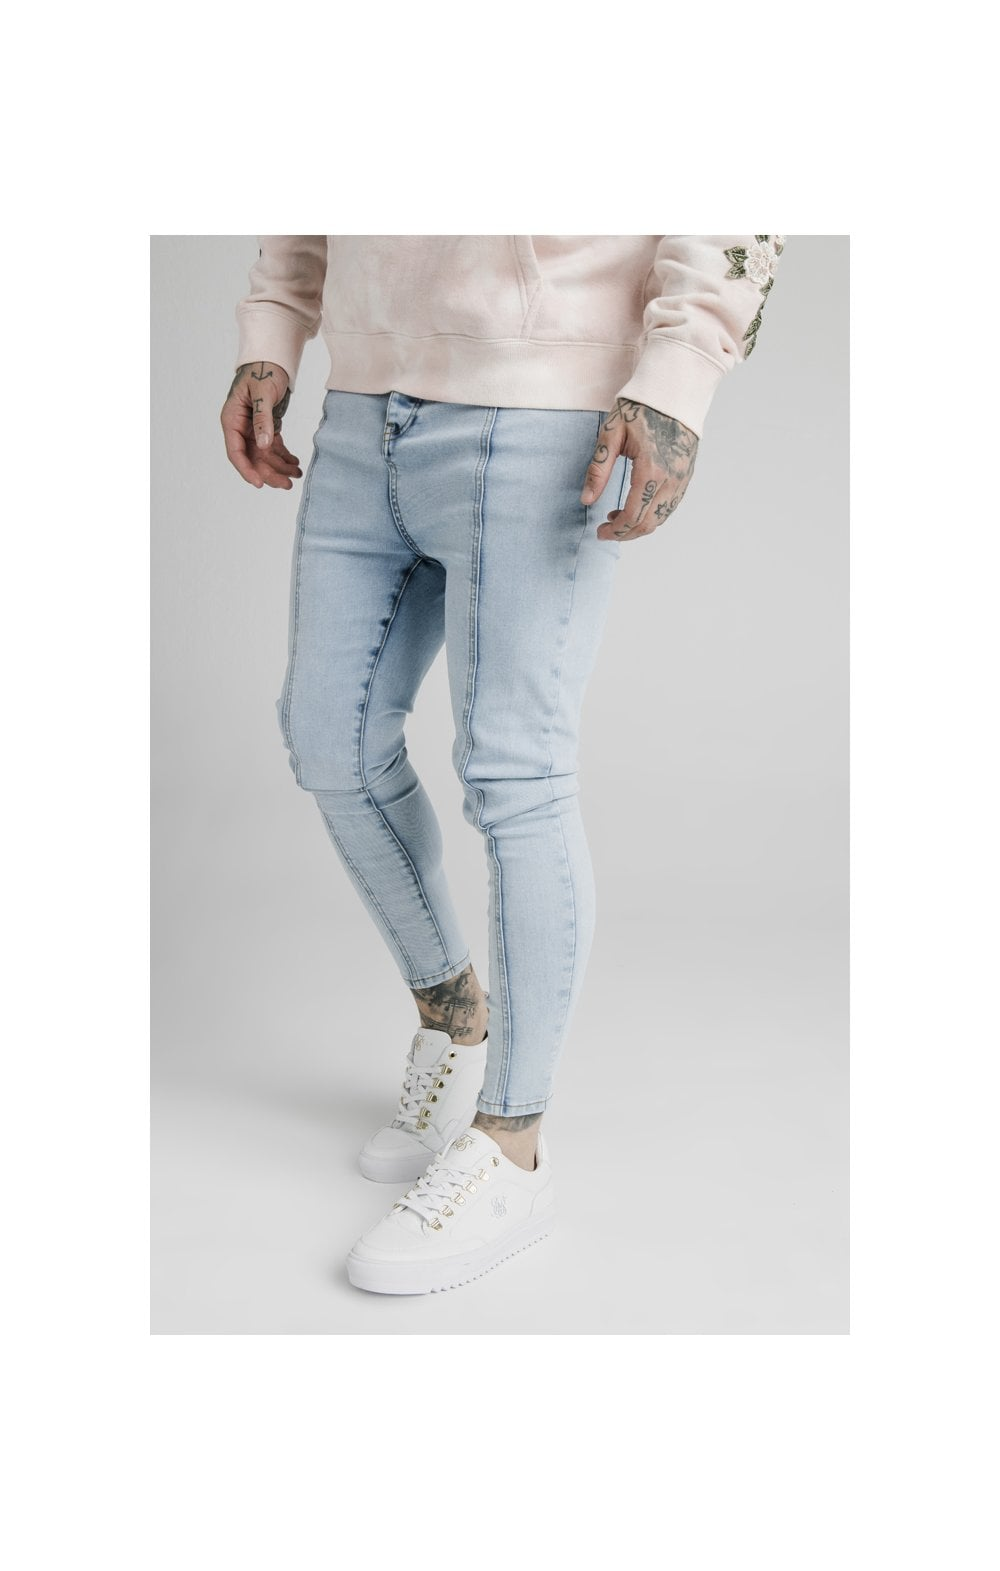 SikSilk Drop Crotch Pleated Applique Denims - White (1)